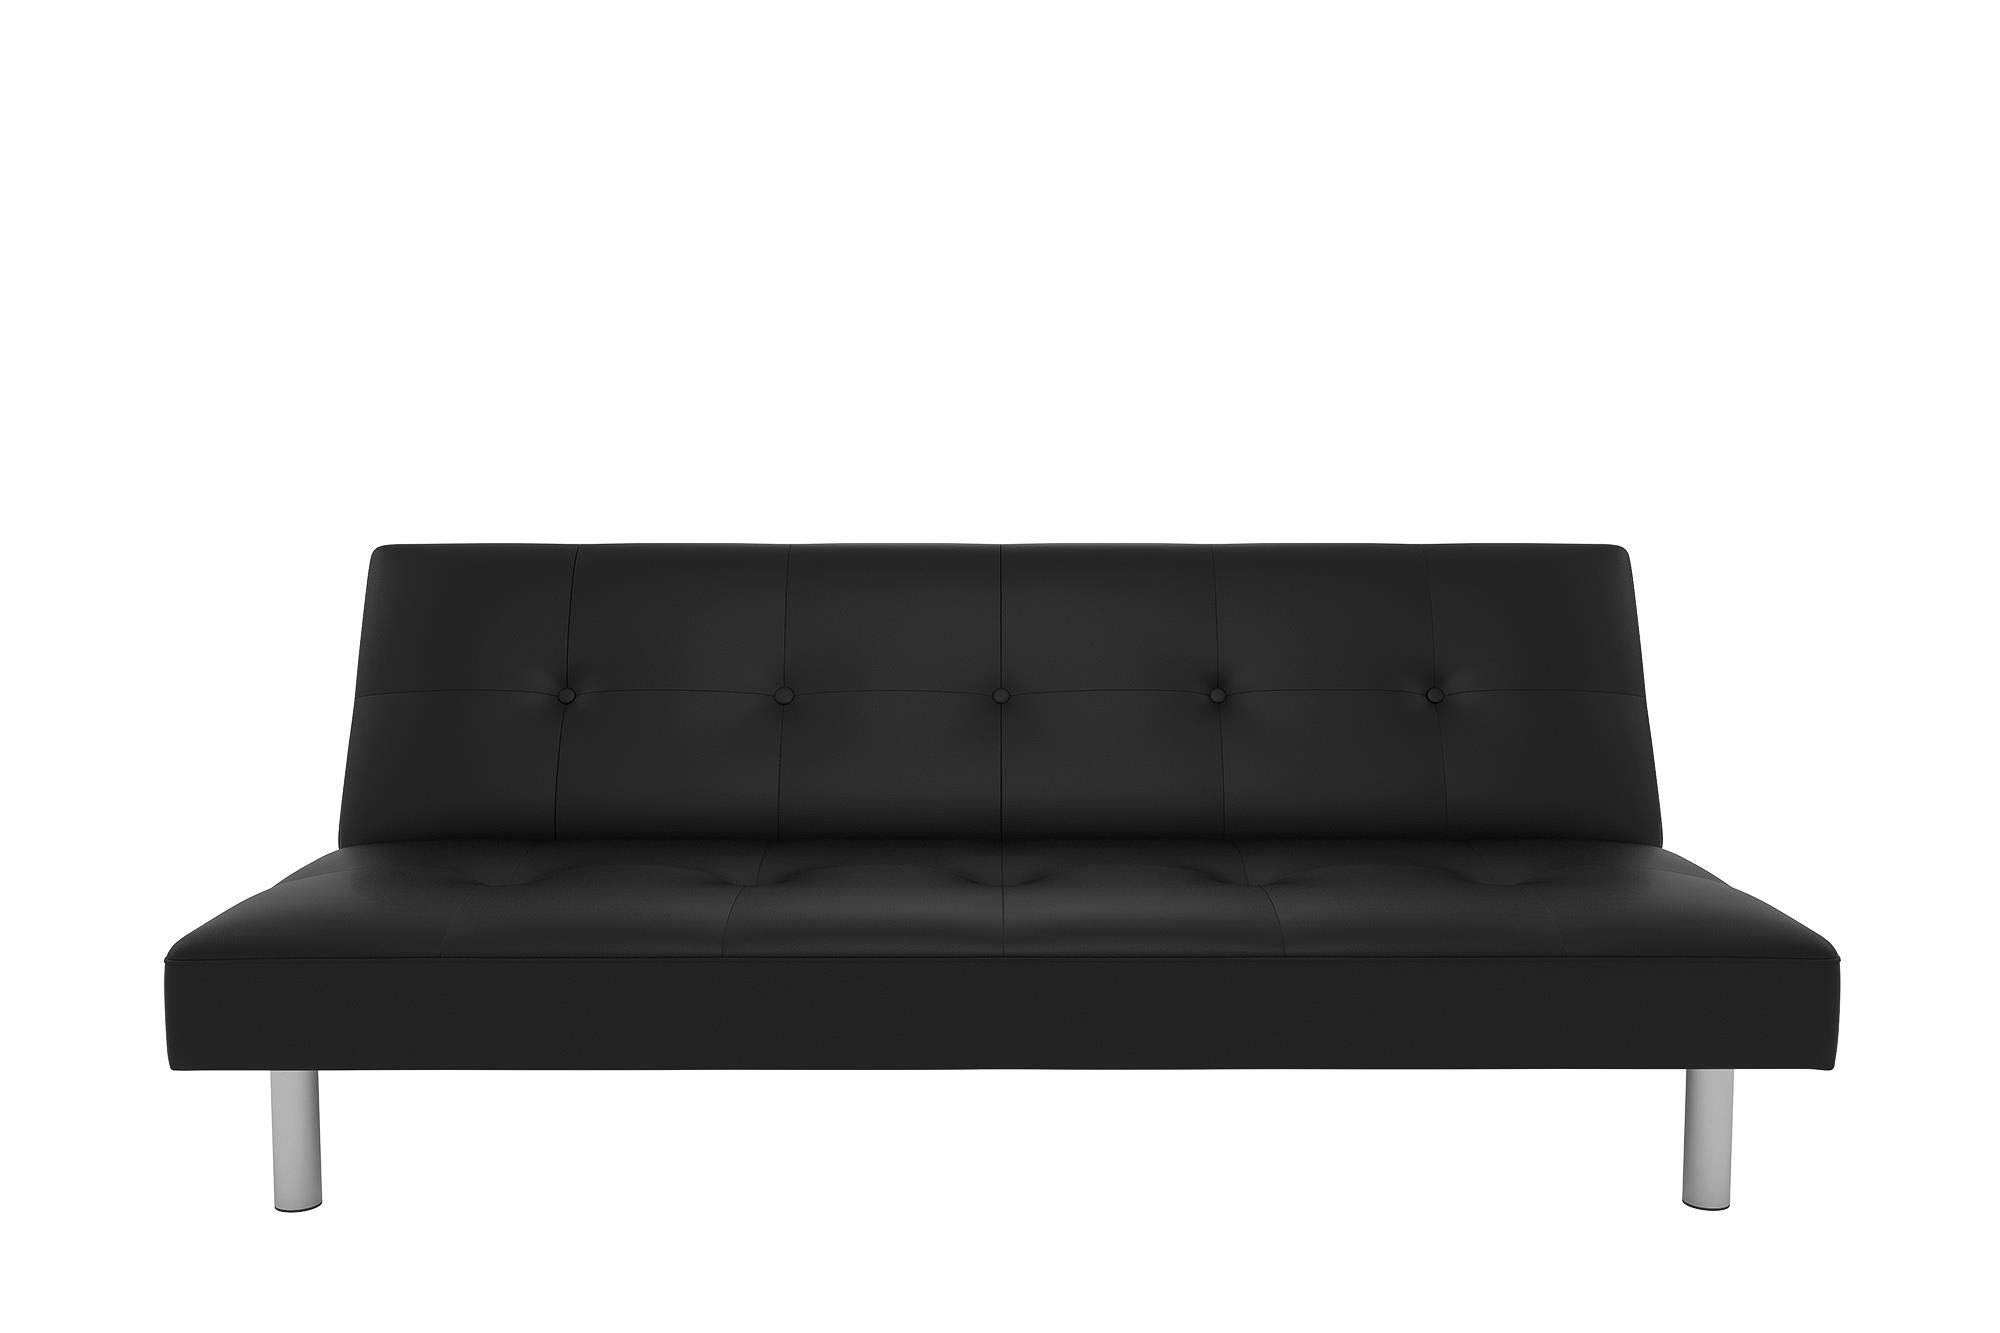 DHP Nola Futon Couch with Tufted Faux Leather Upholstery, Modern Style, Black Faux Leather by DHP